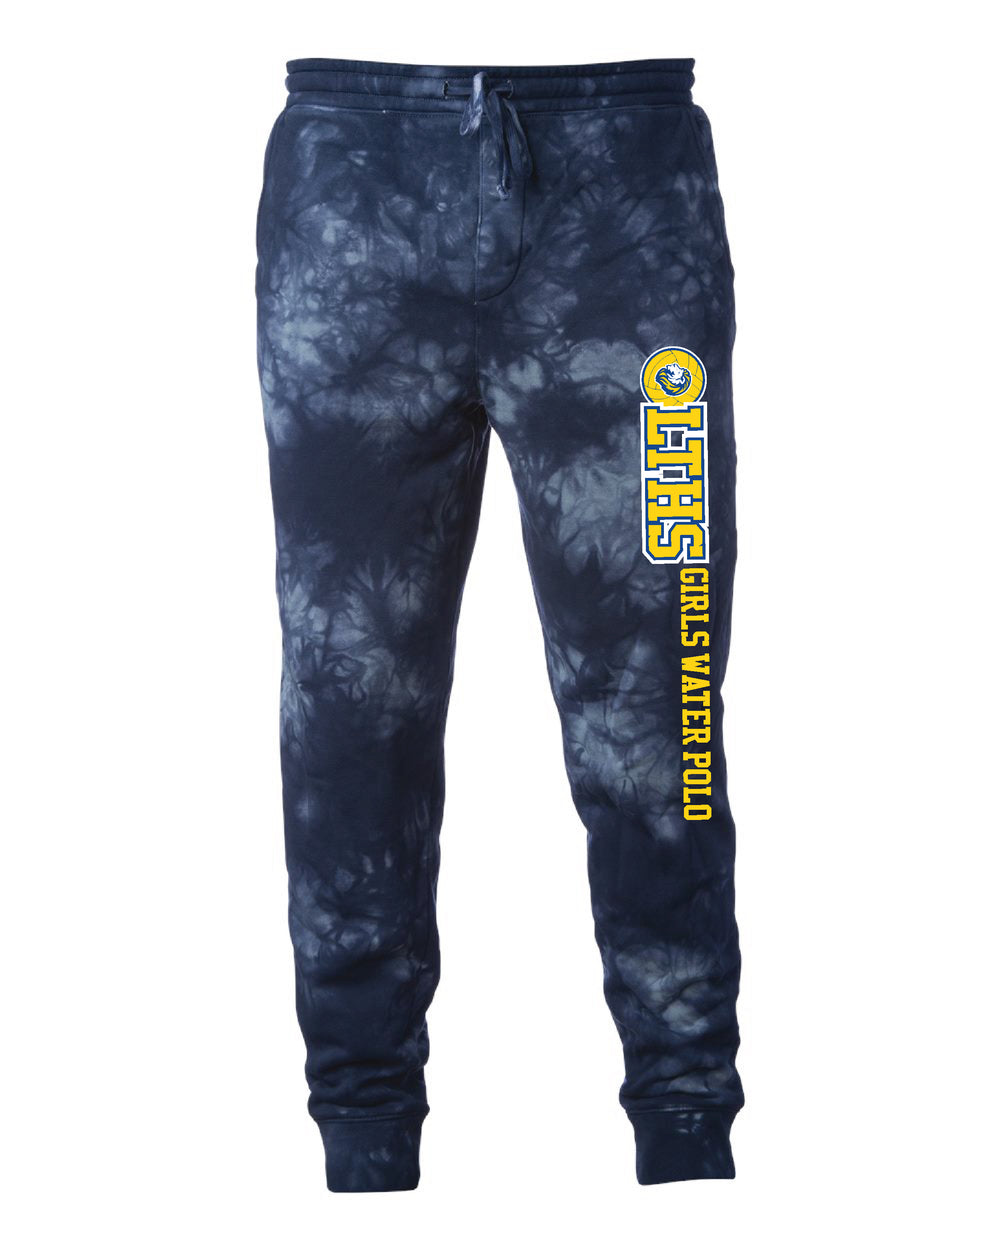 LTHS Girls Water Polo Independent Trading Co. Tie Dye Joggers